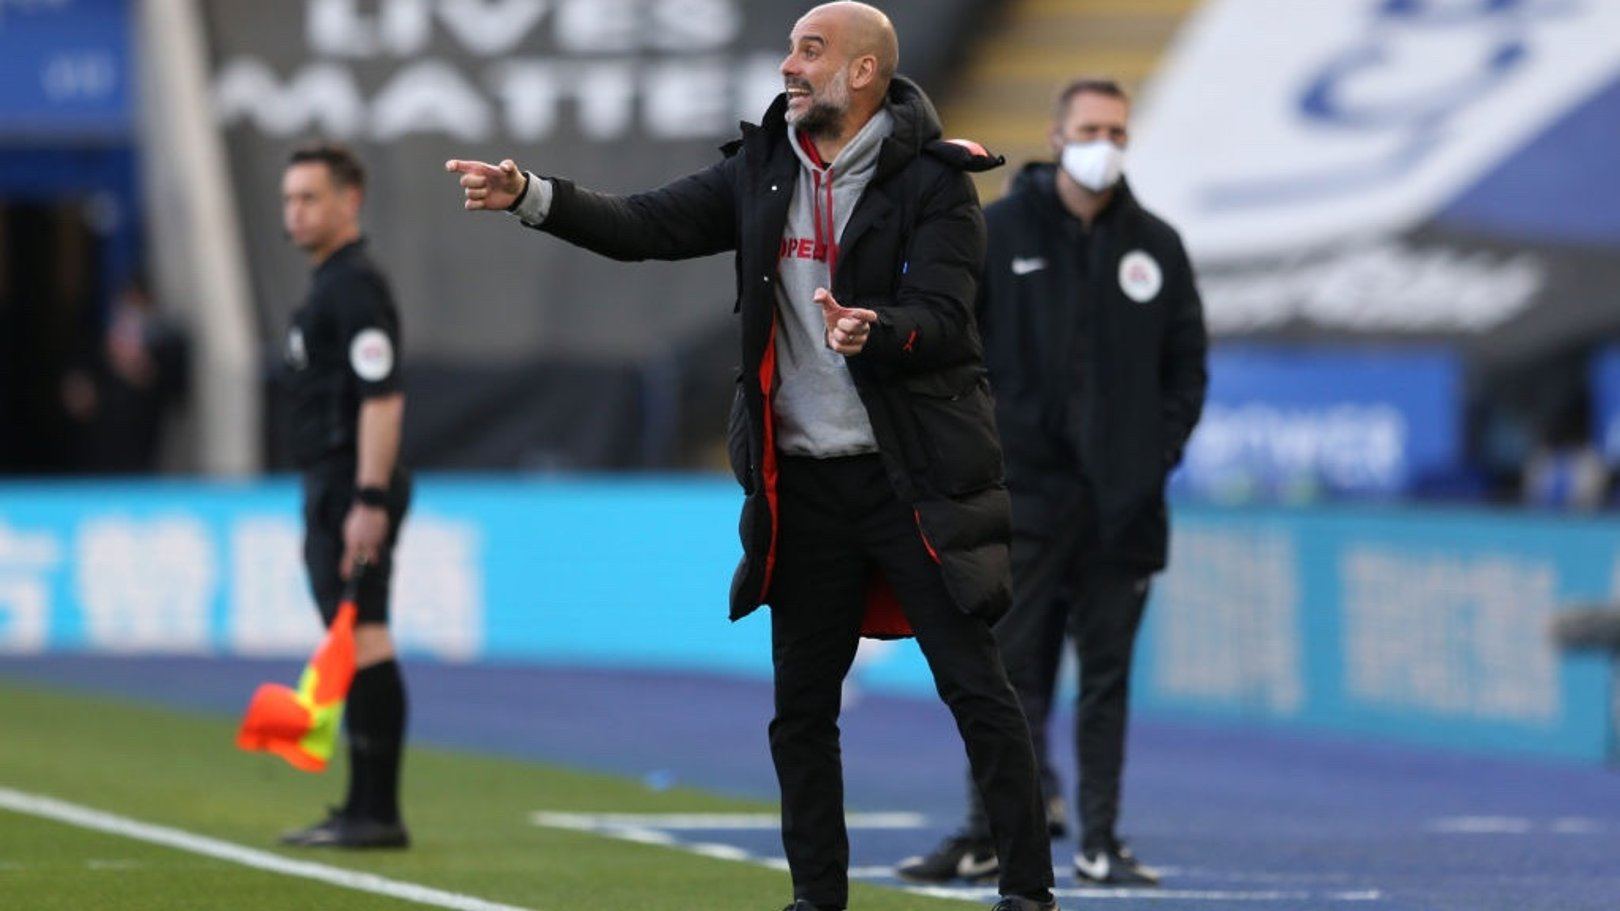 PEP TALK: The boss passes on some instructions from the touchline.